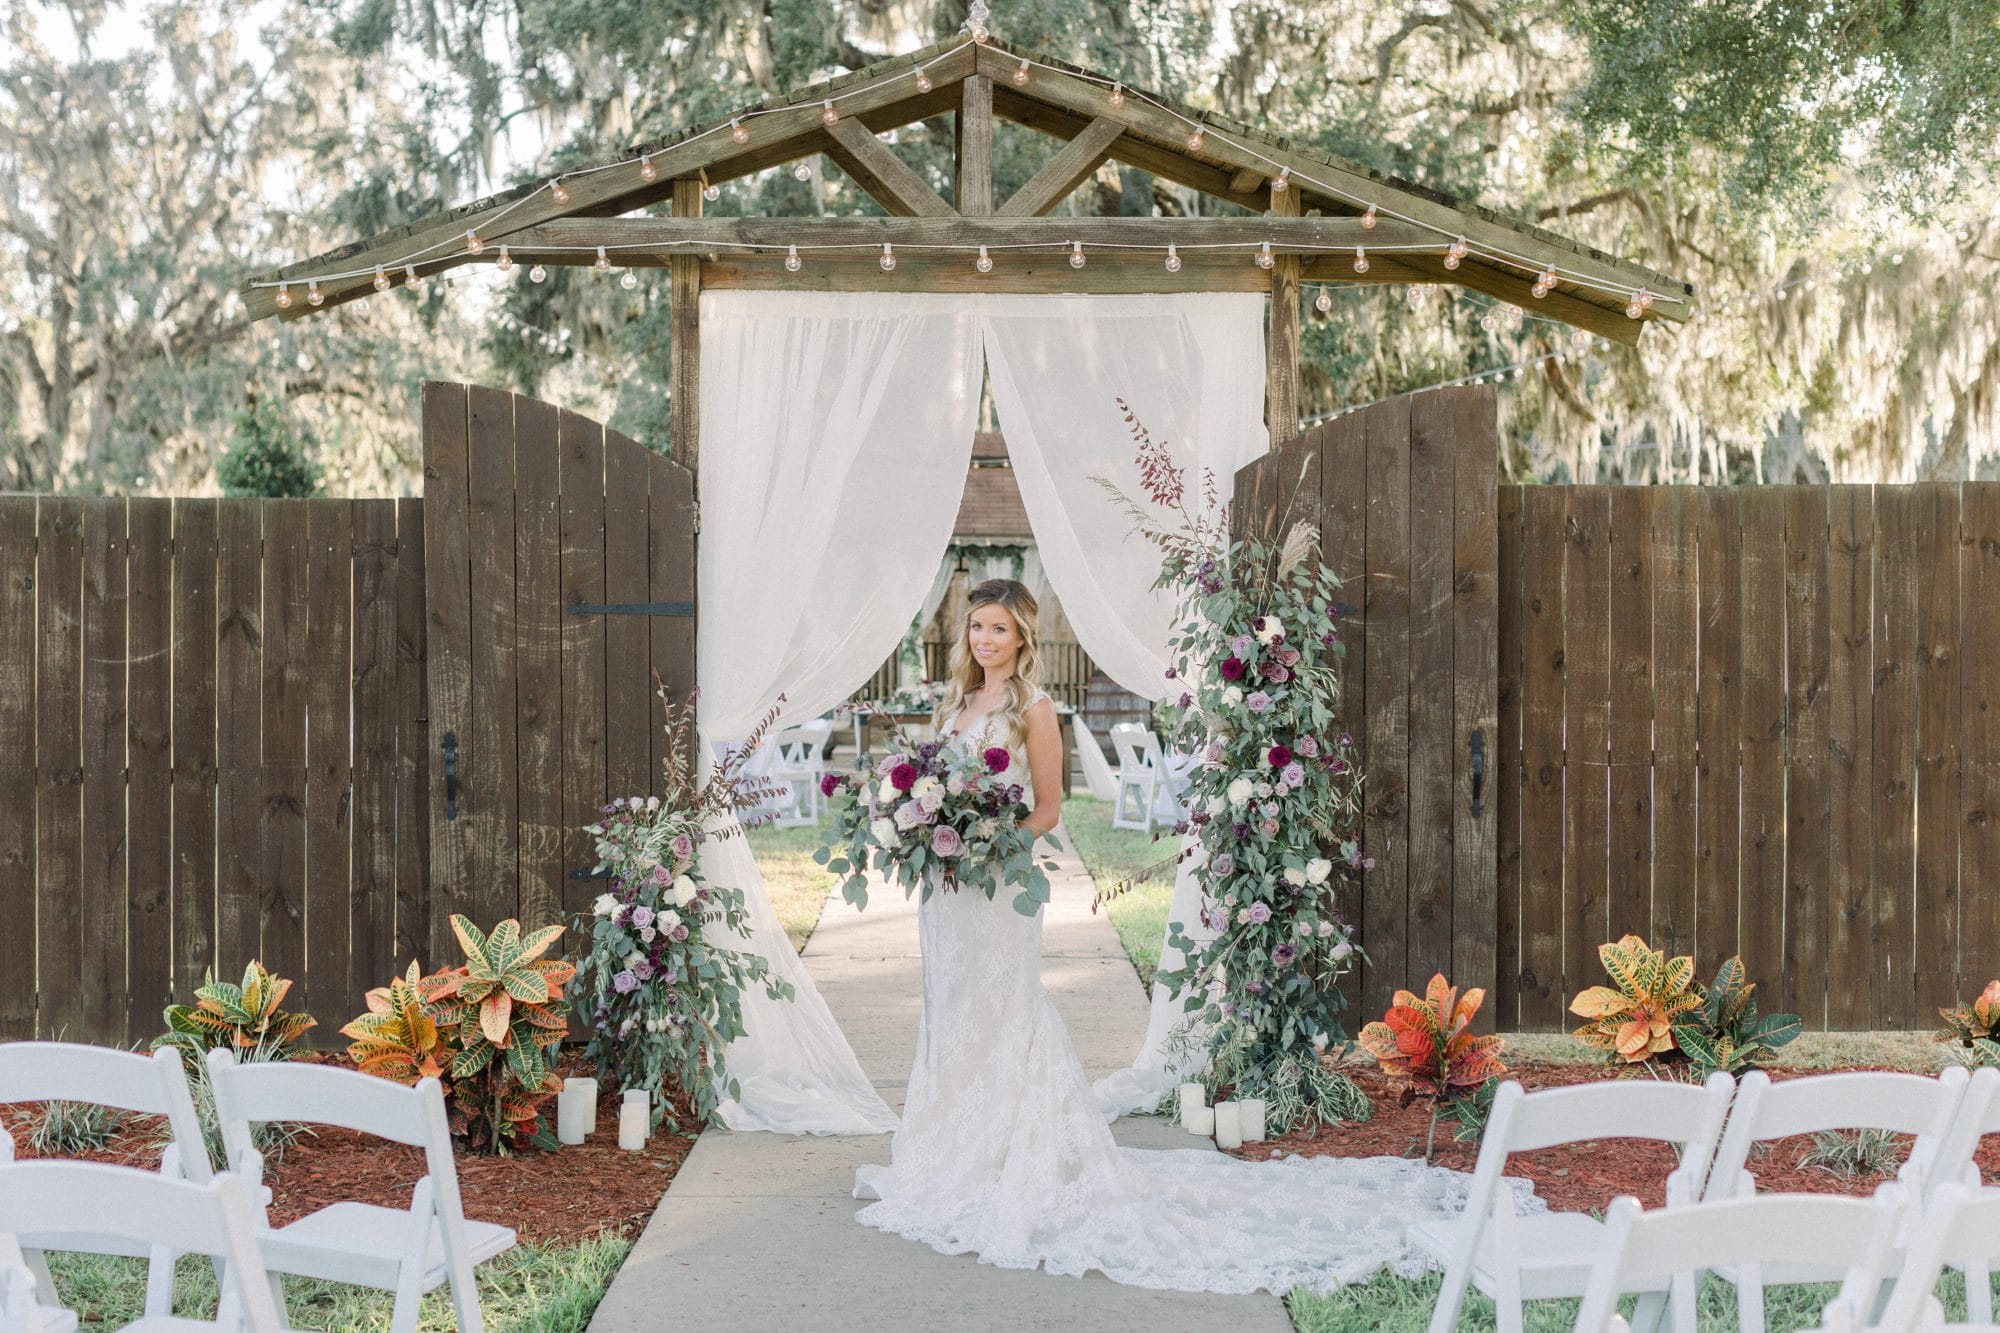 Harmony Haven Event Venue - bride standing under rustic wooden archway draped with curtains